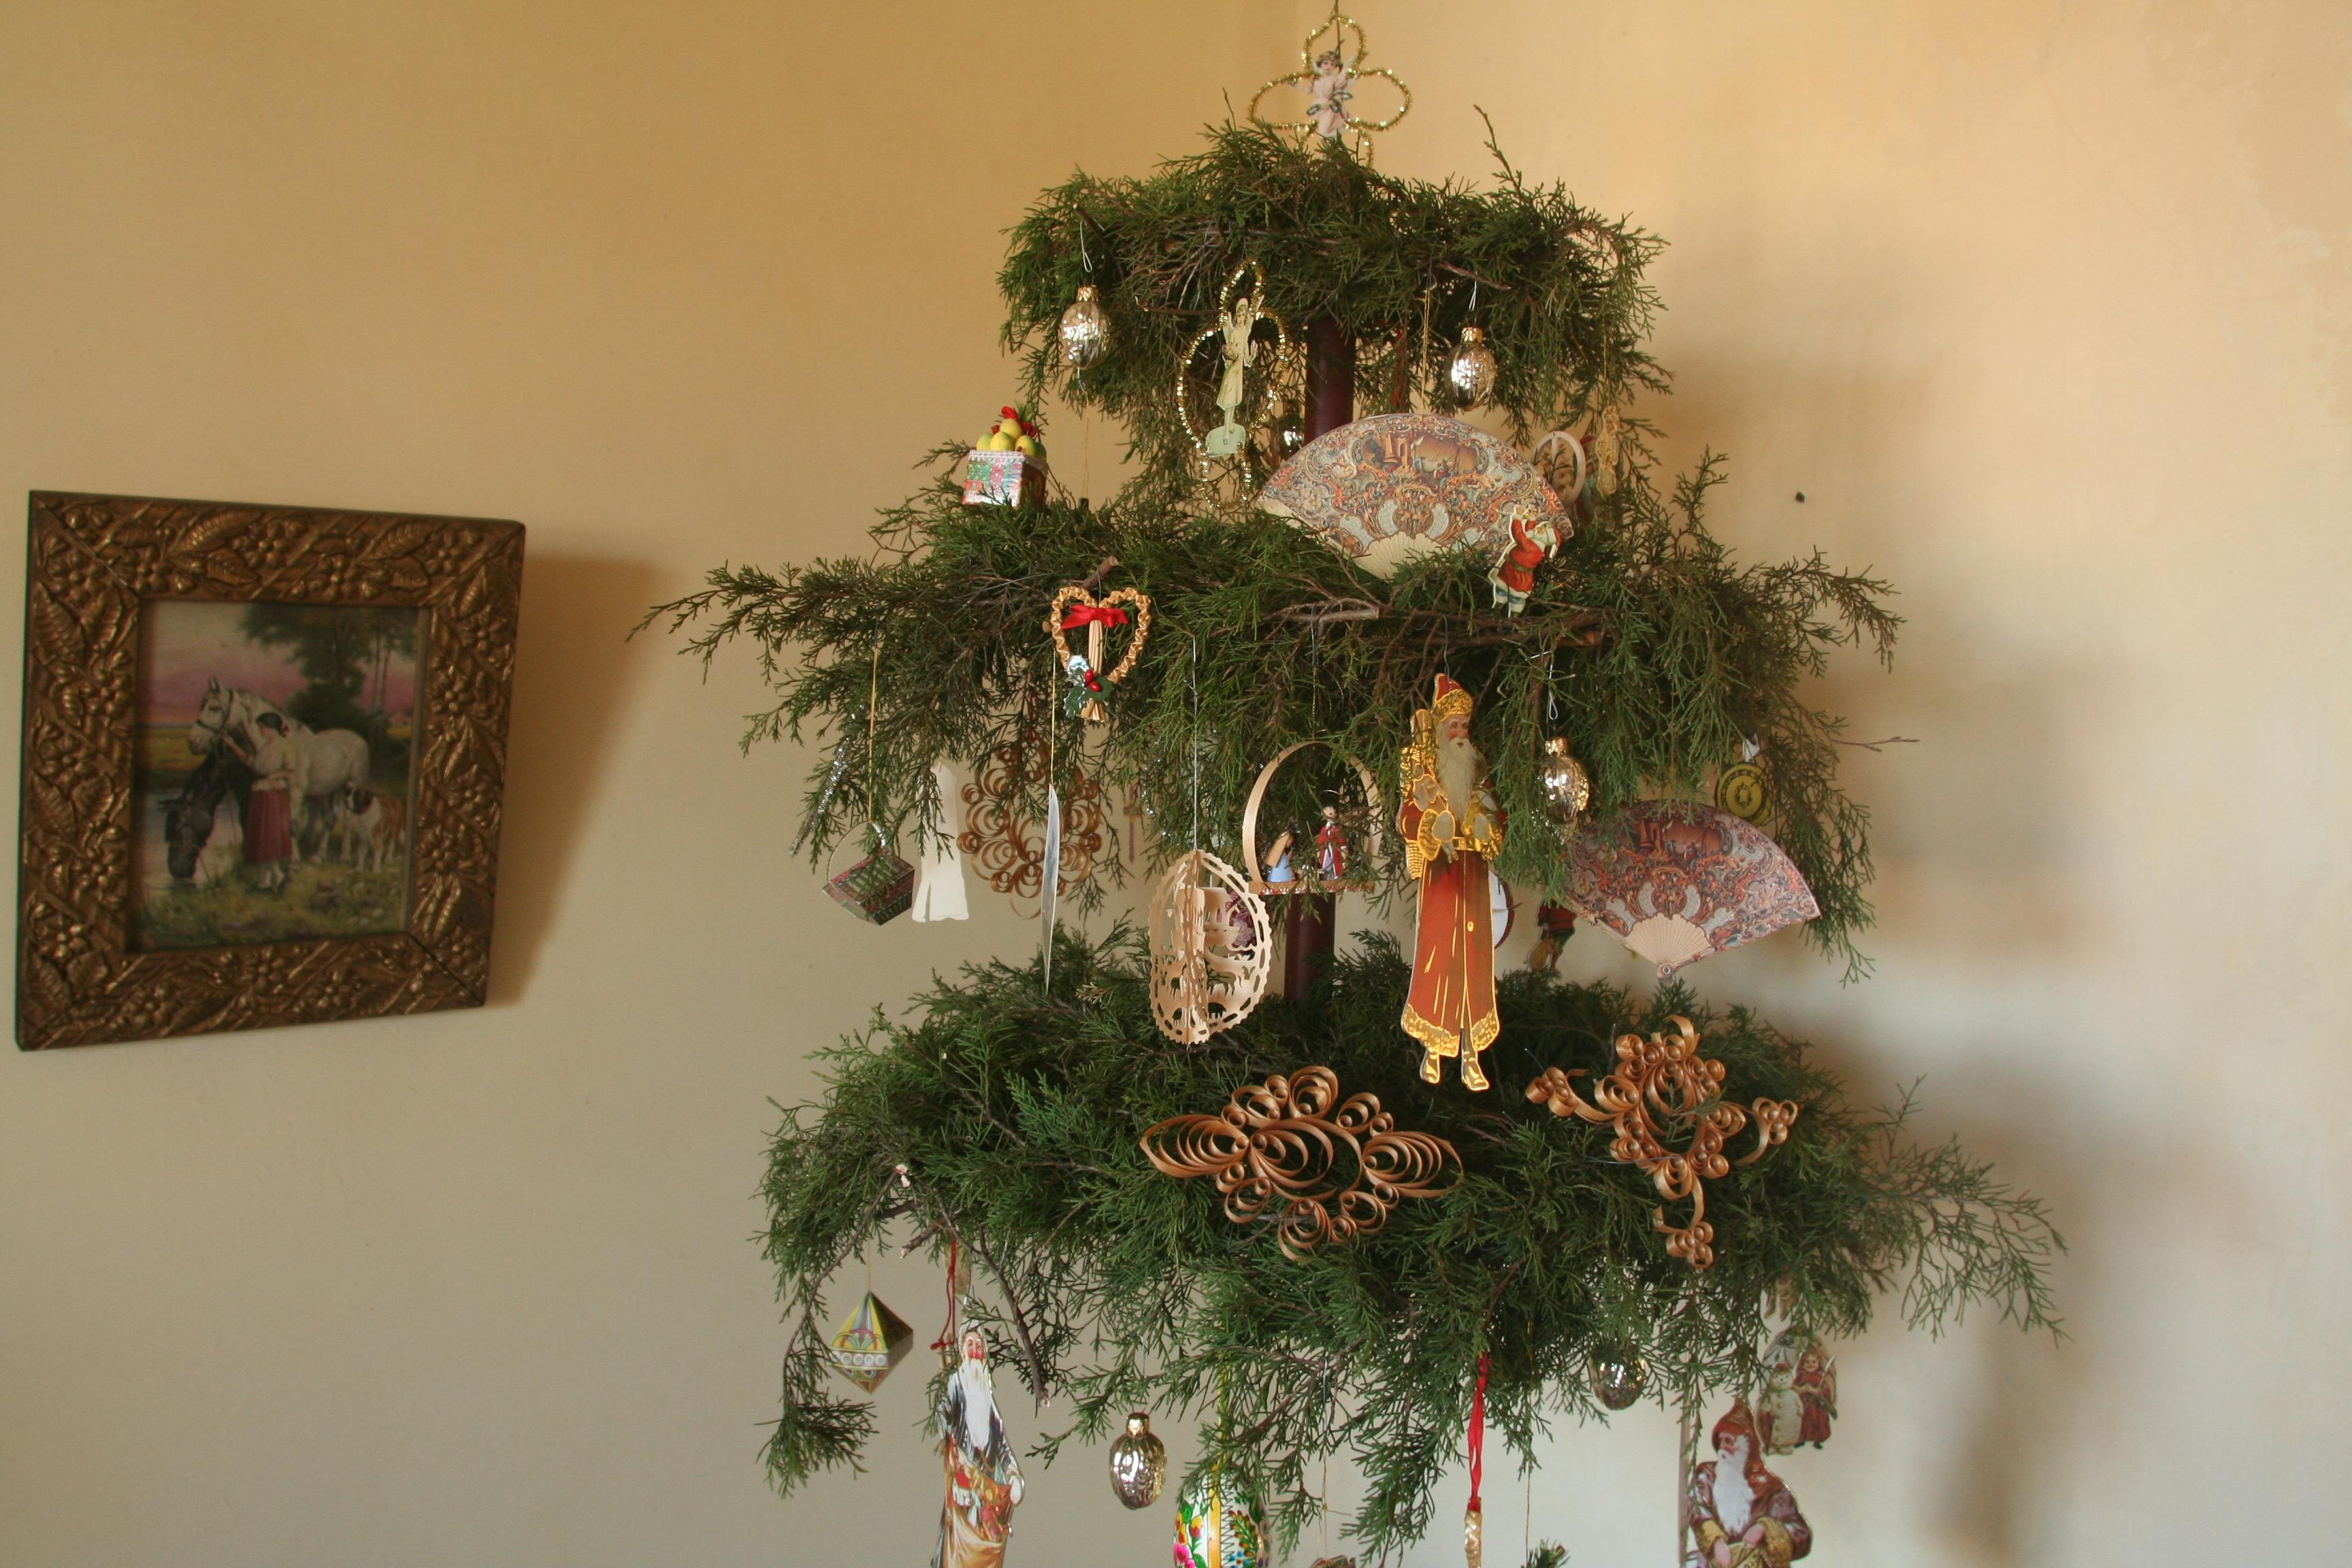 Amazing Celebrate A Traditional 19th Century German Christmas In Historic Hermann.  The Pommer Gentner House, Circa 1840, Will Be Decorated With Greenery And  Lit By ...